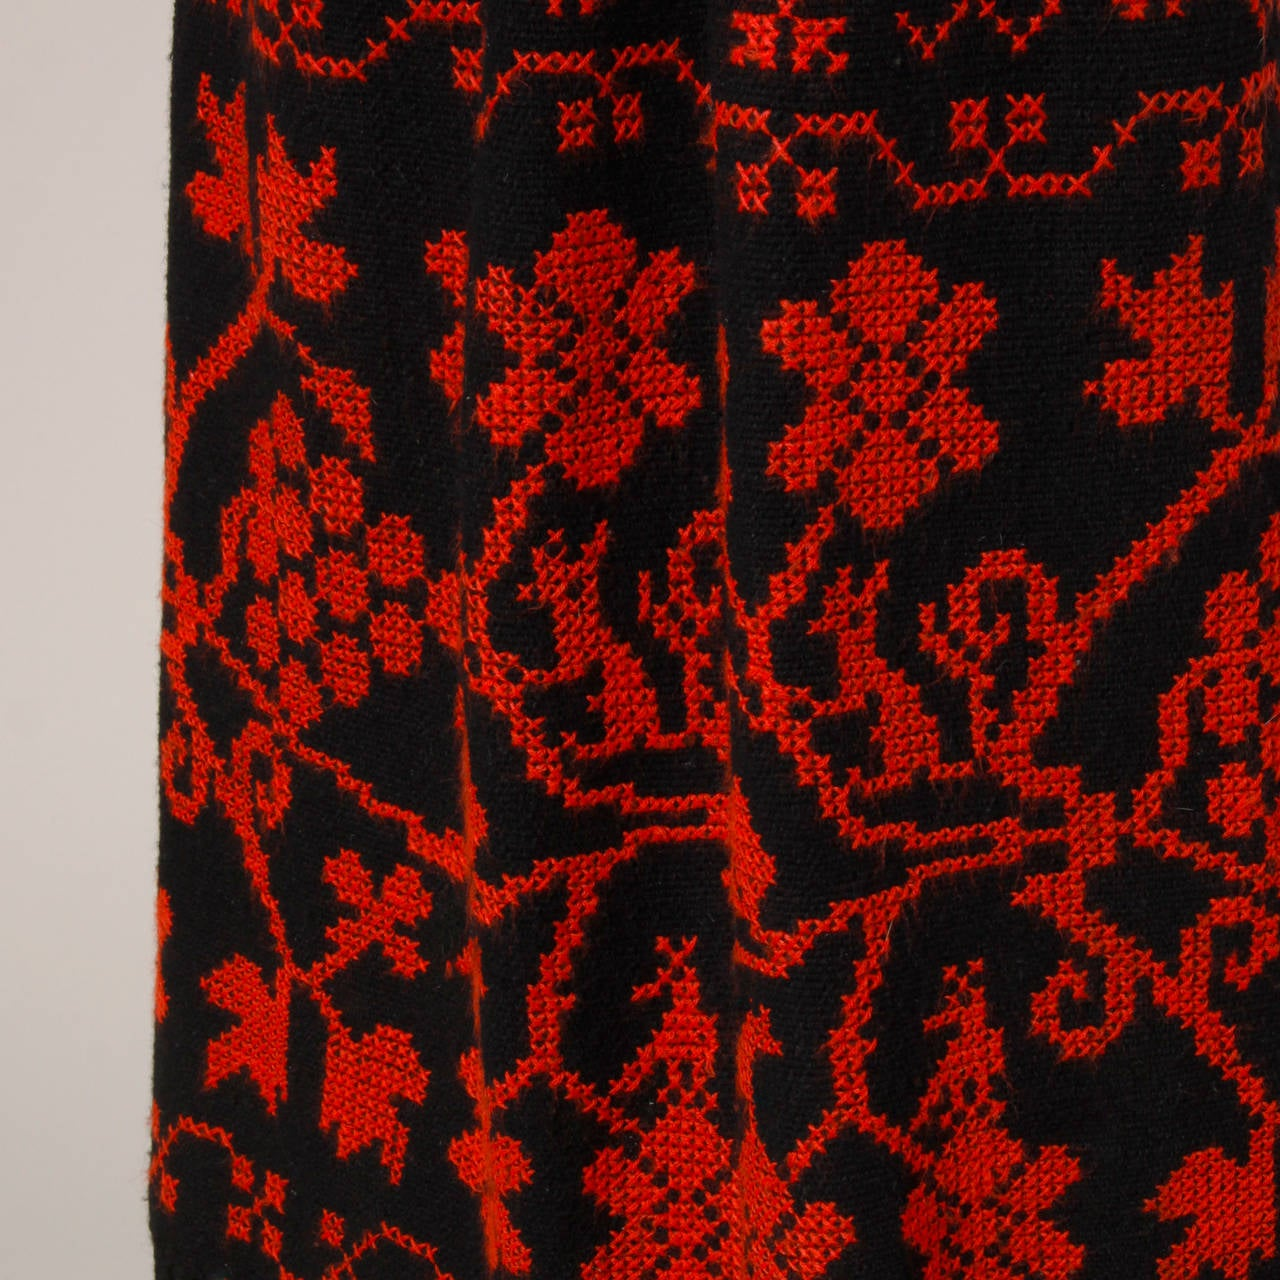 Vintage Hand Embroidered Cross Stitch Maxi Skirt 3